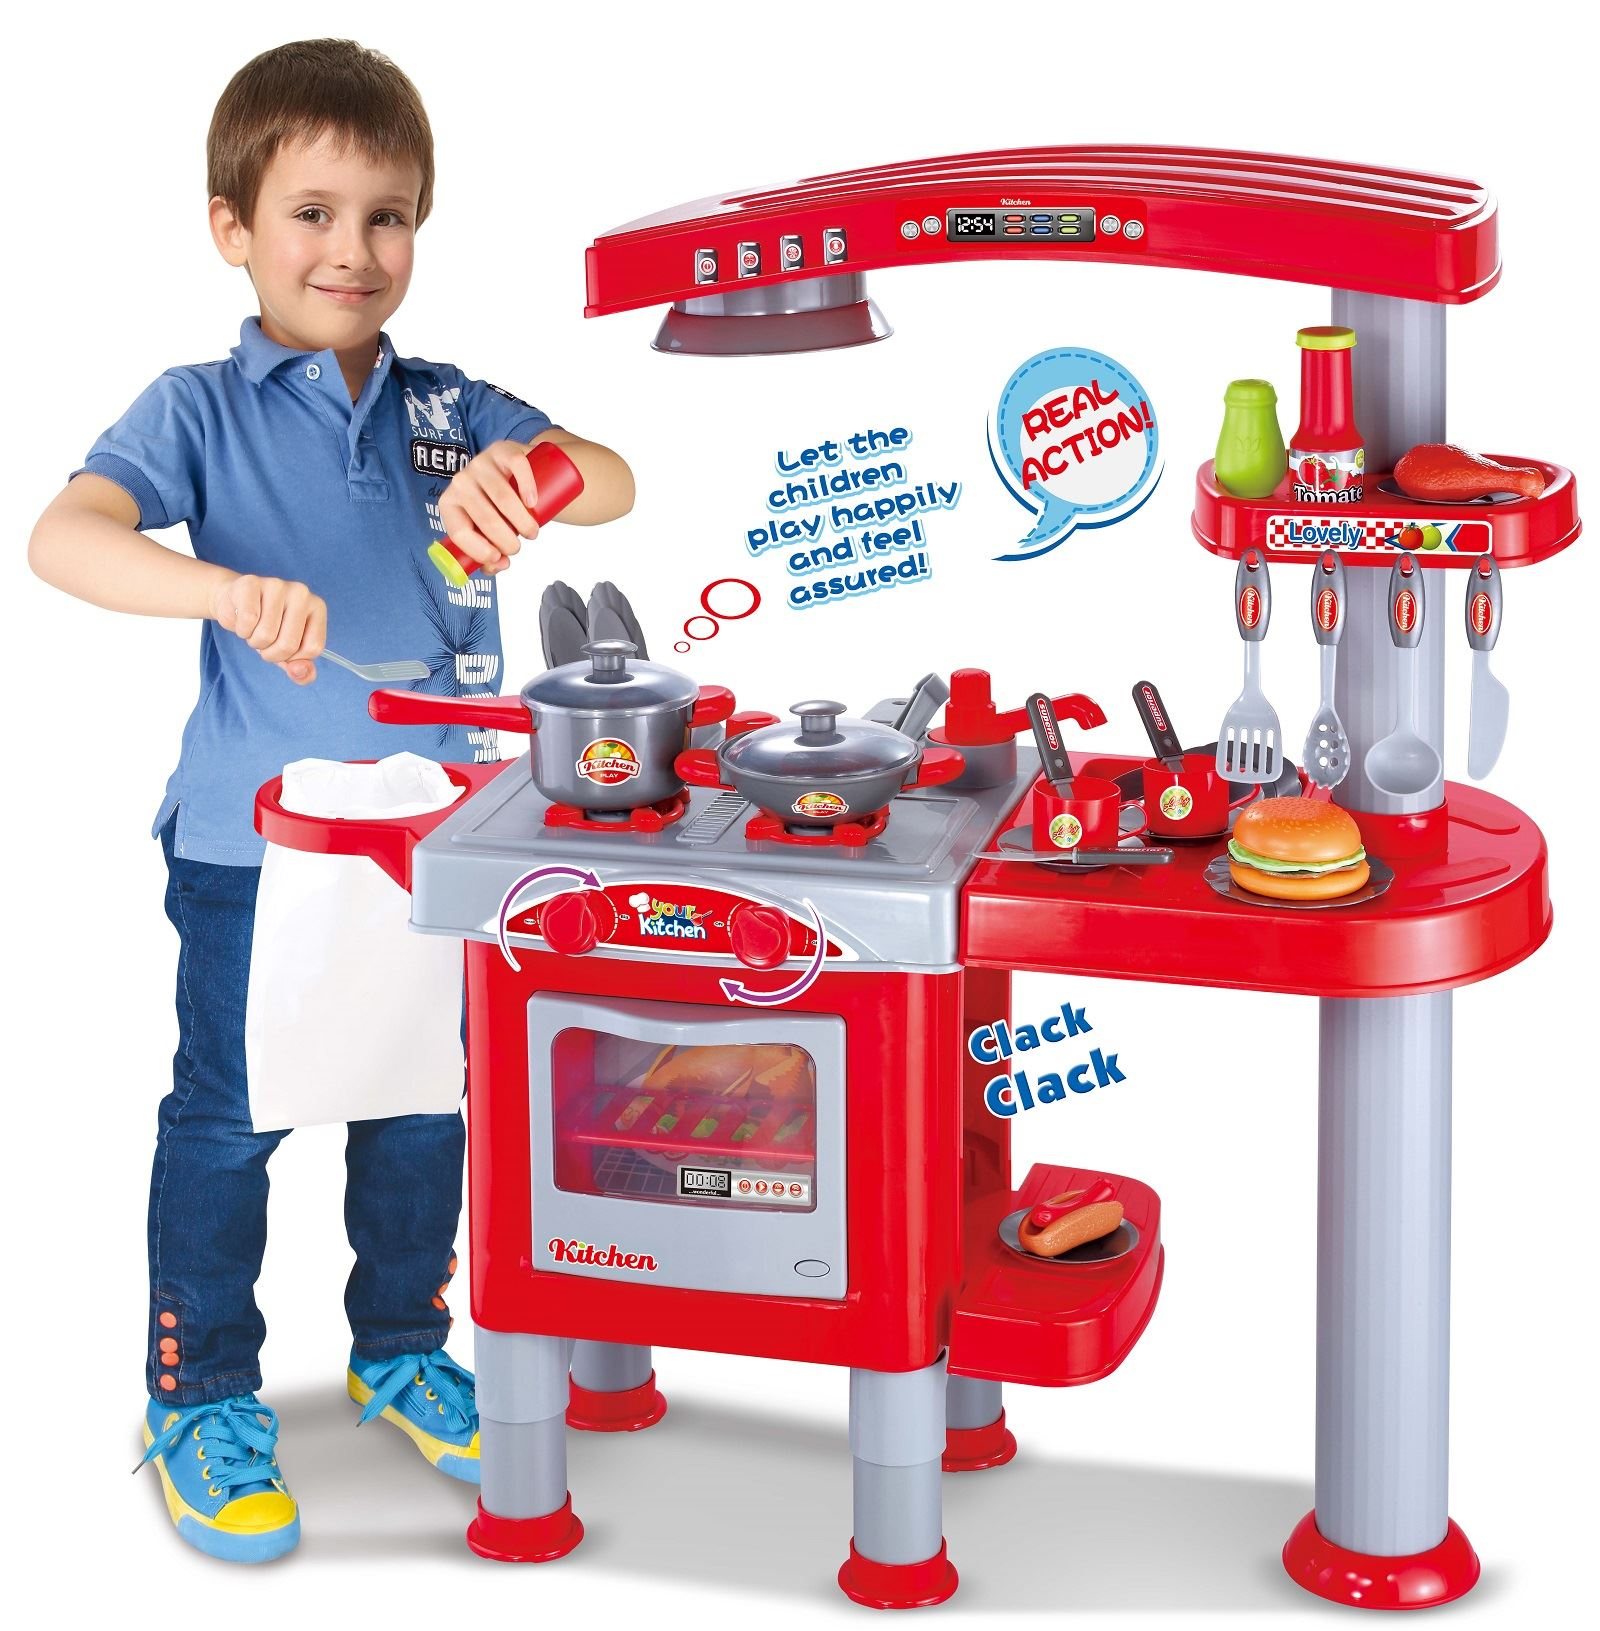 Image Is Loading Vinsani Electronic Kids Deluxe Pretend Play Kitchen  Cooking